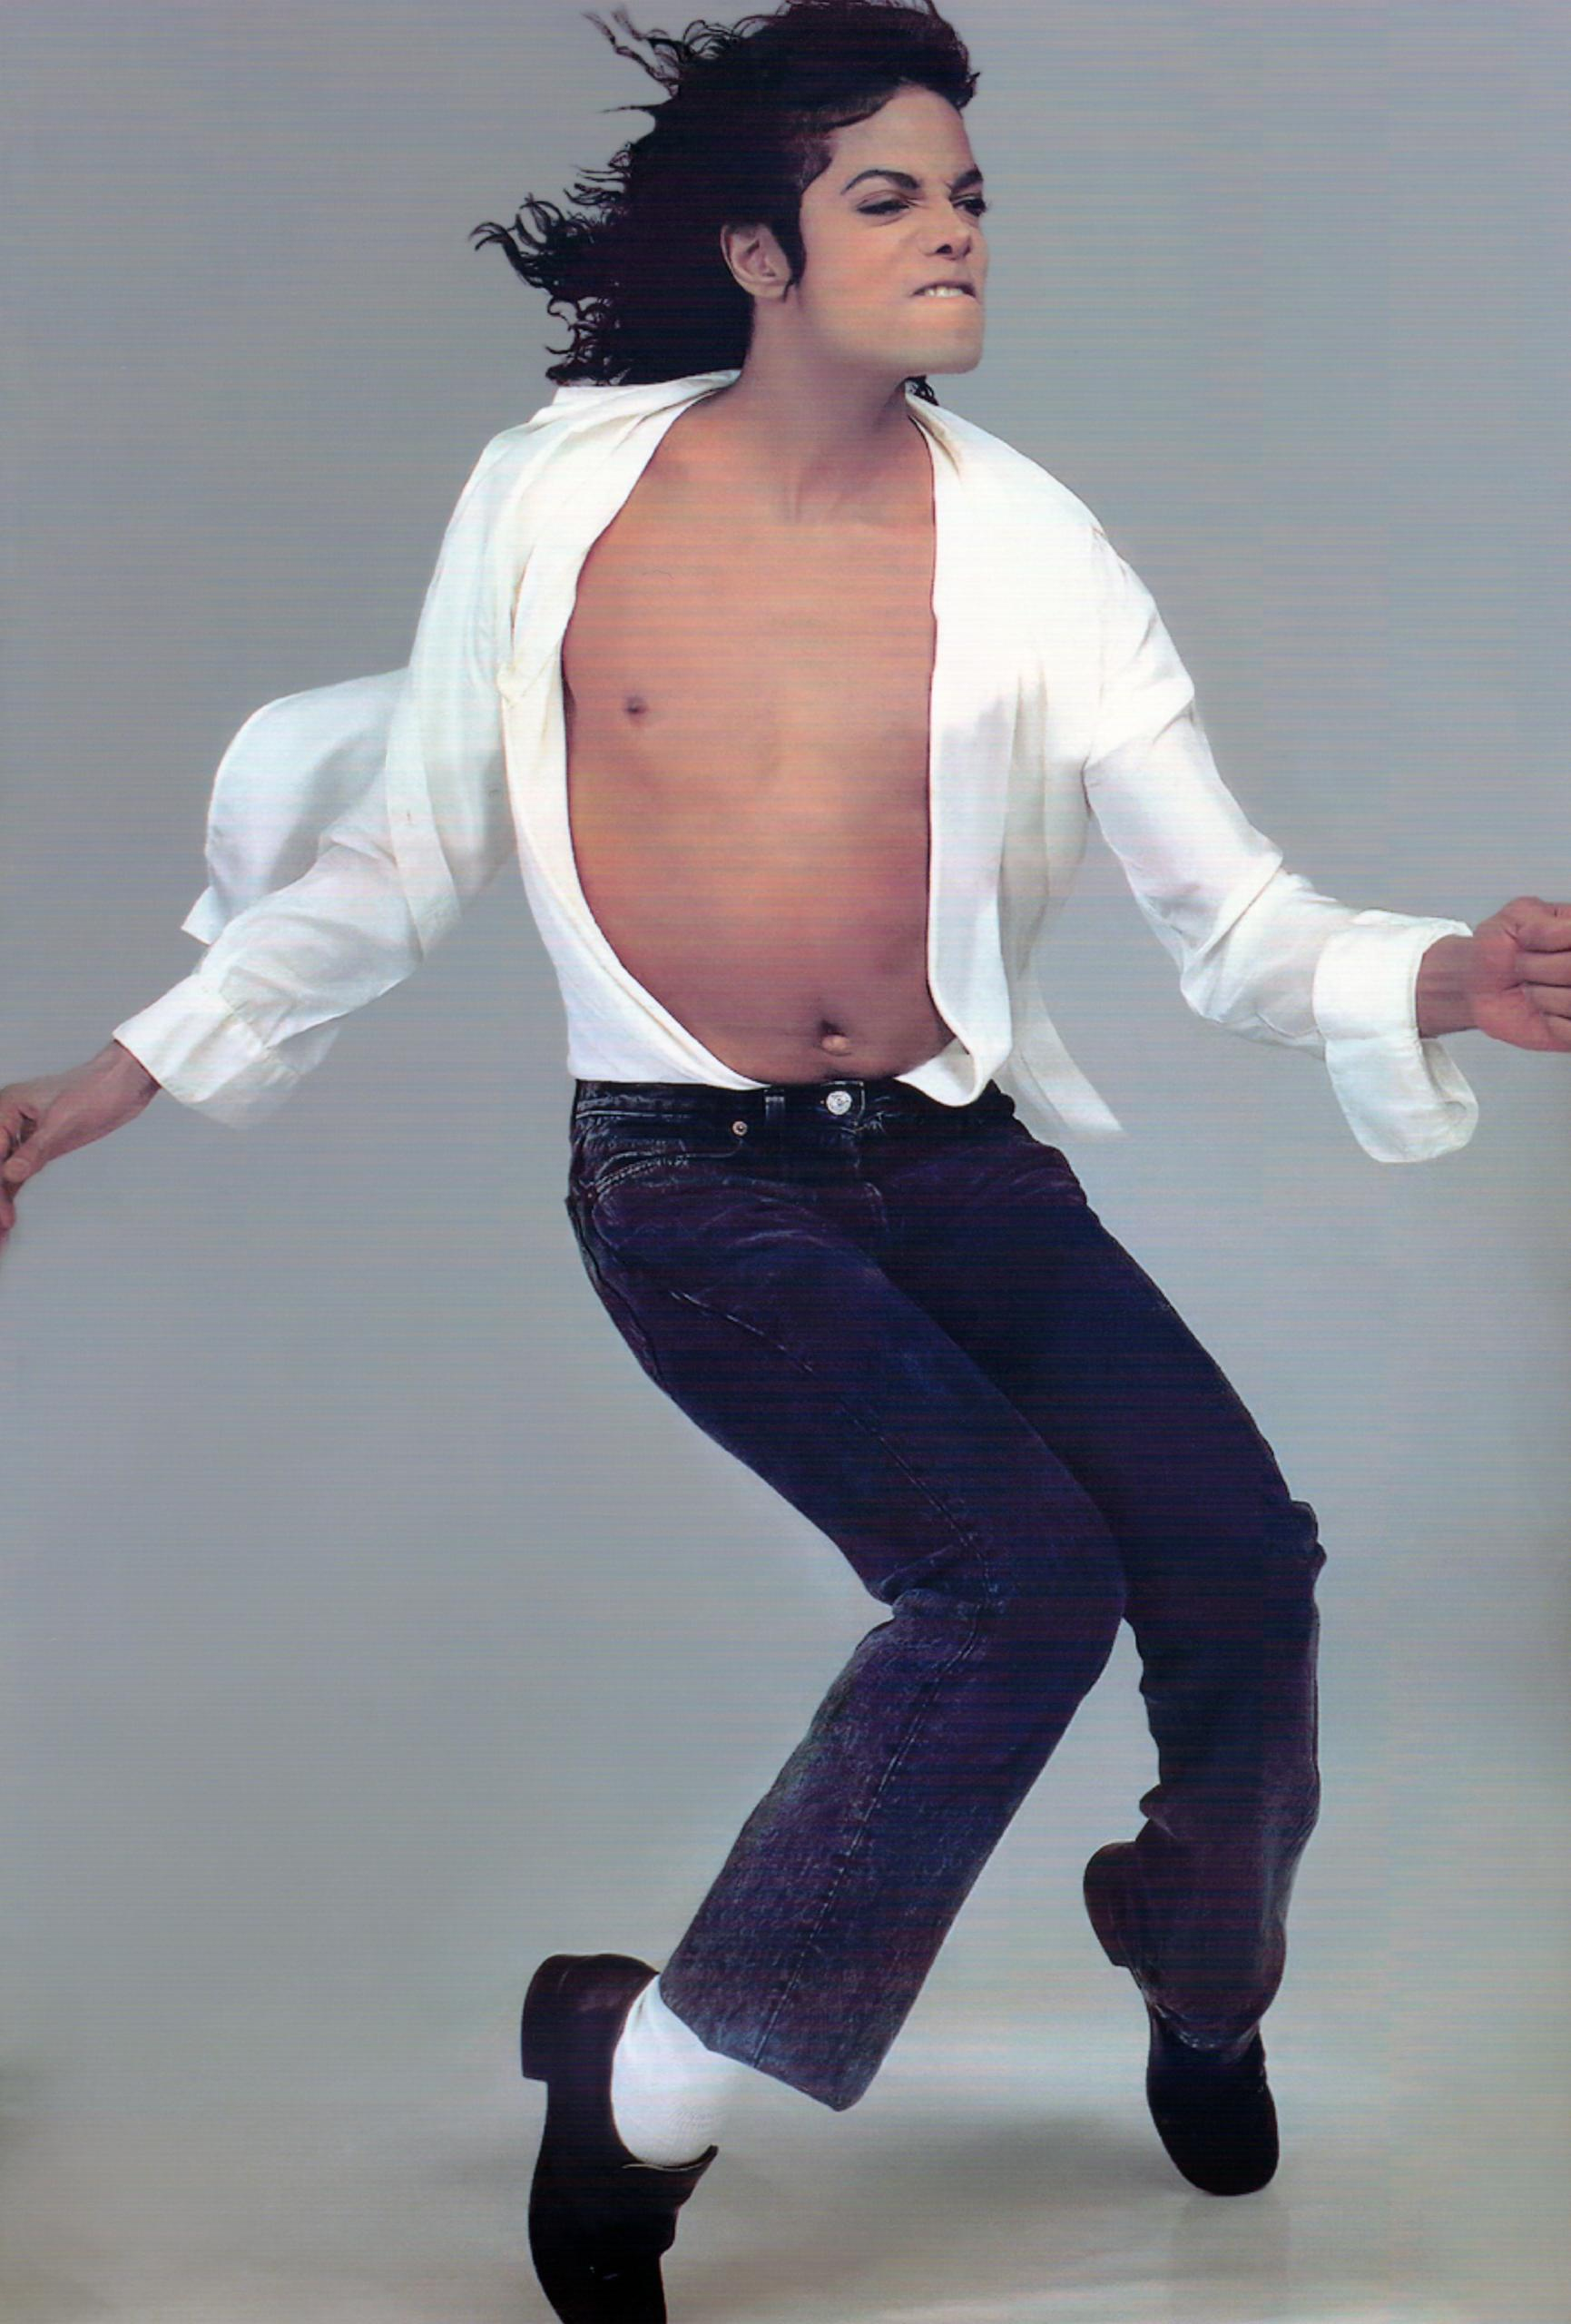 MICHAEL JACKSON SEXY